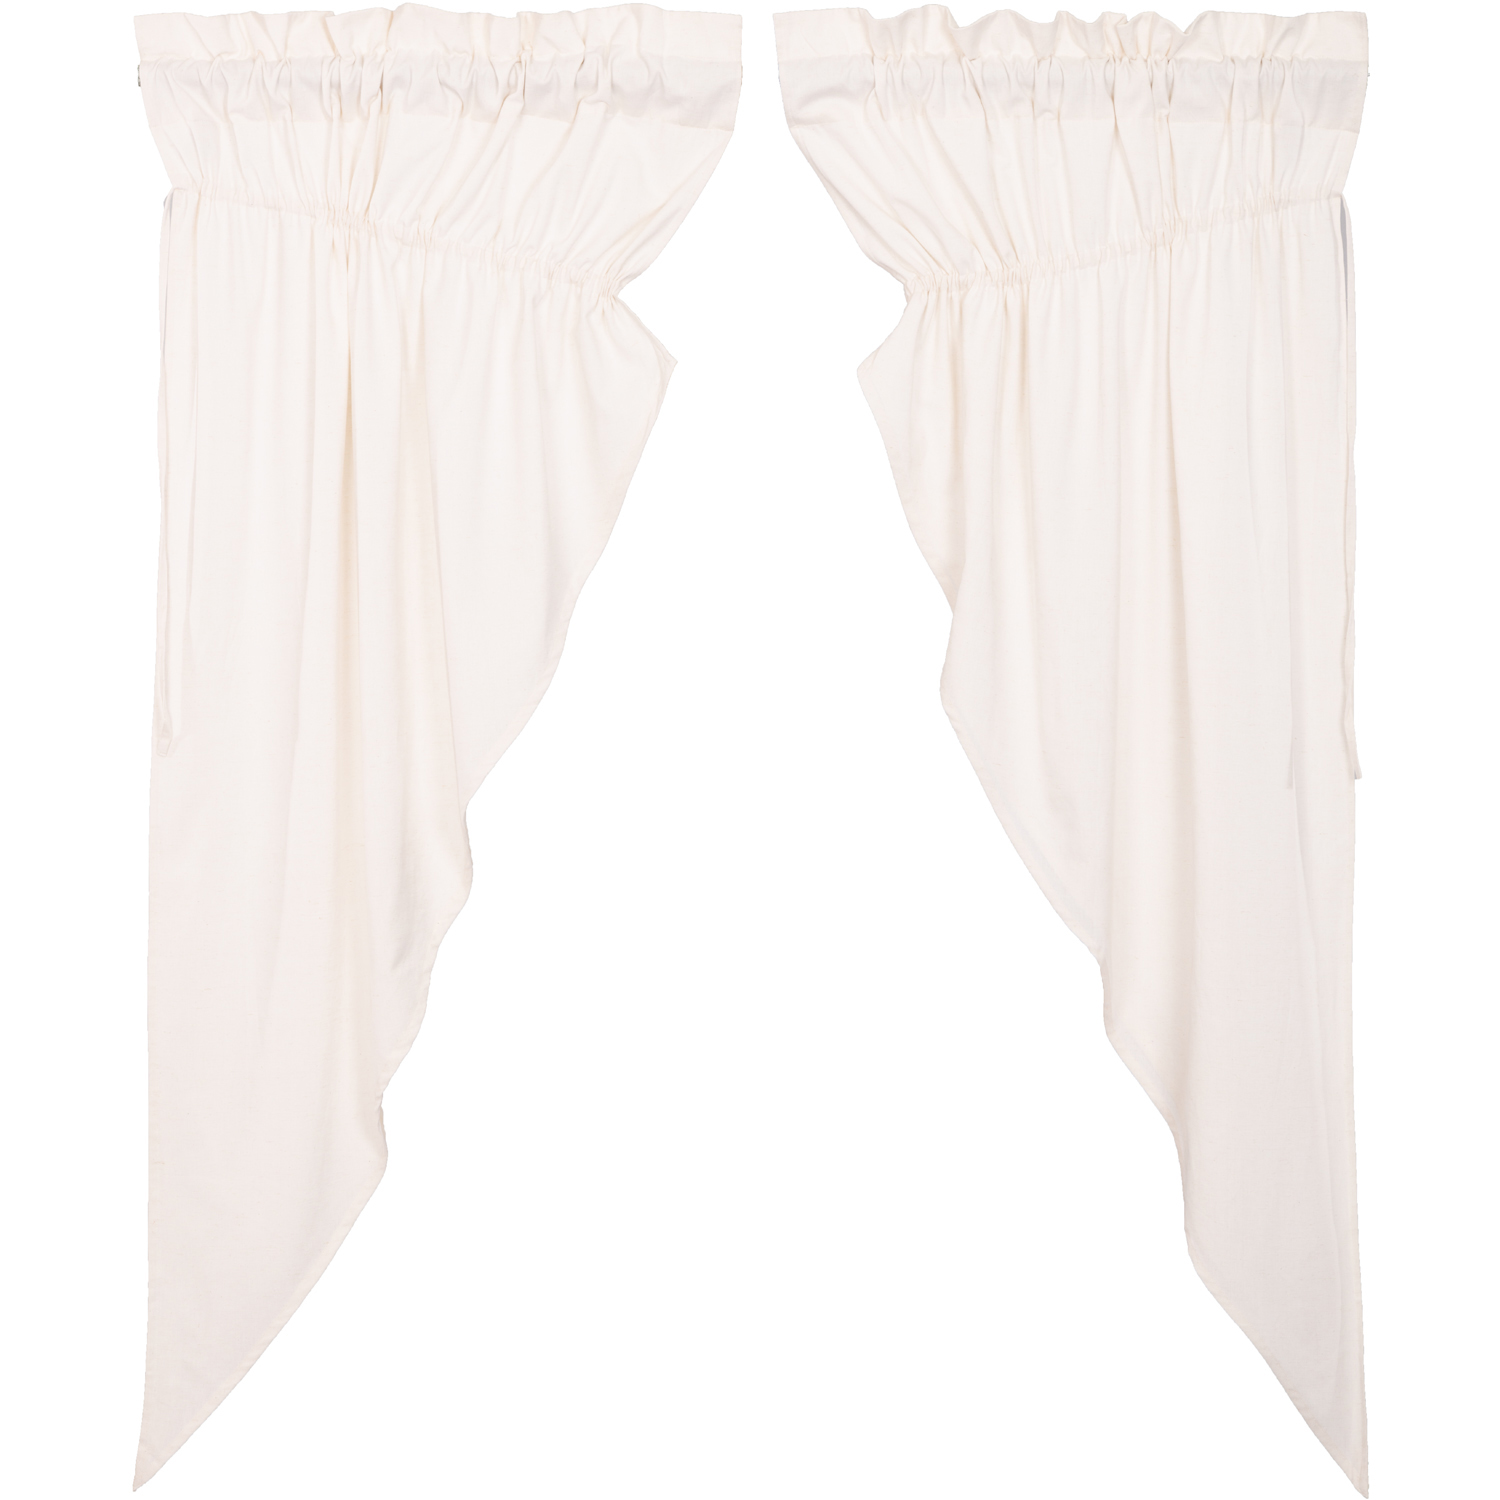 Simple Life Flax Antique White Prairie Short Panel Set of 2 63x36x18